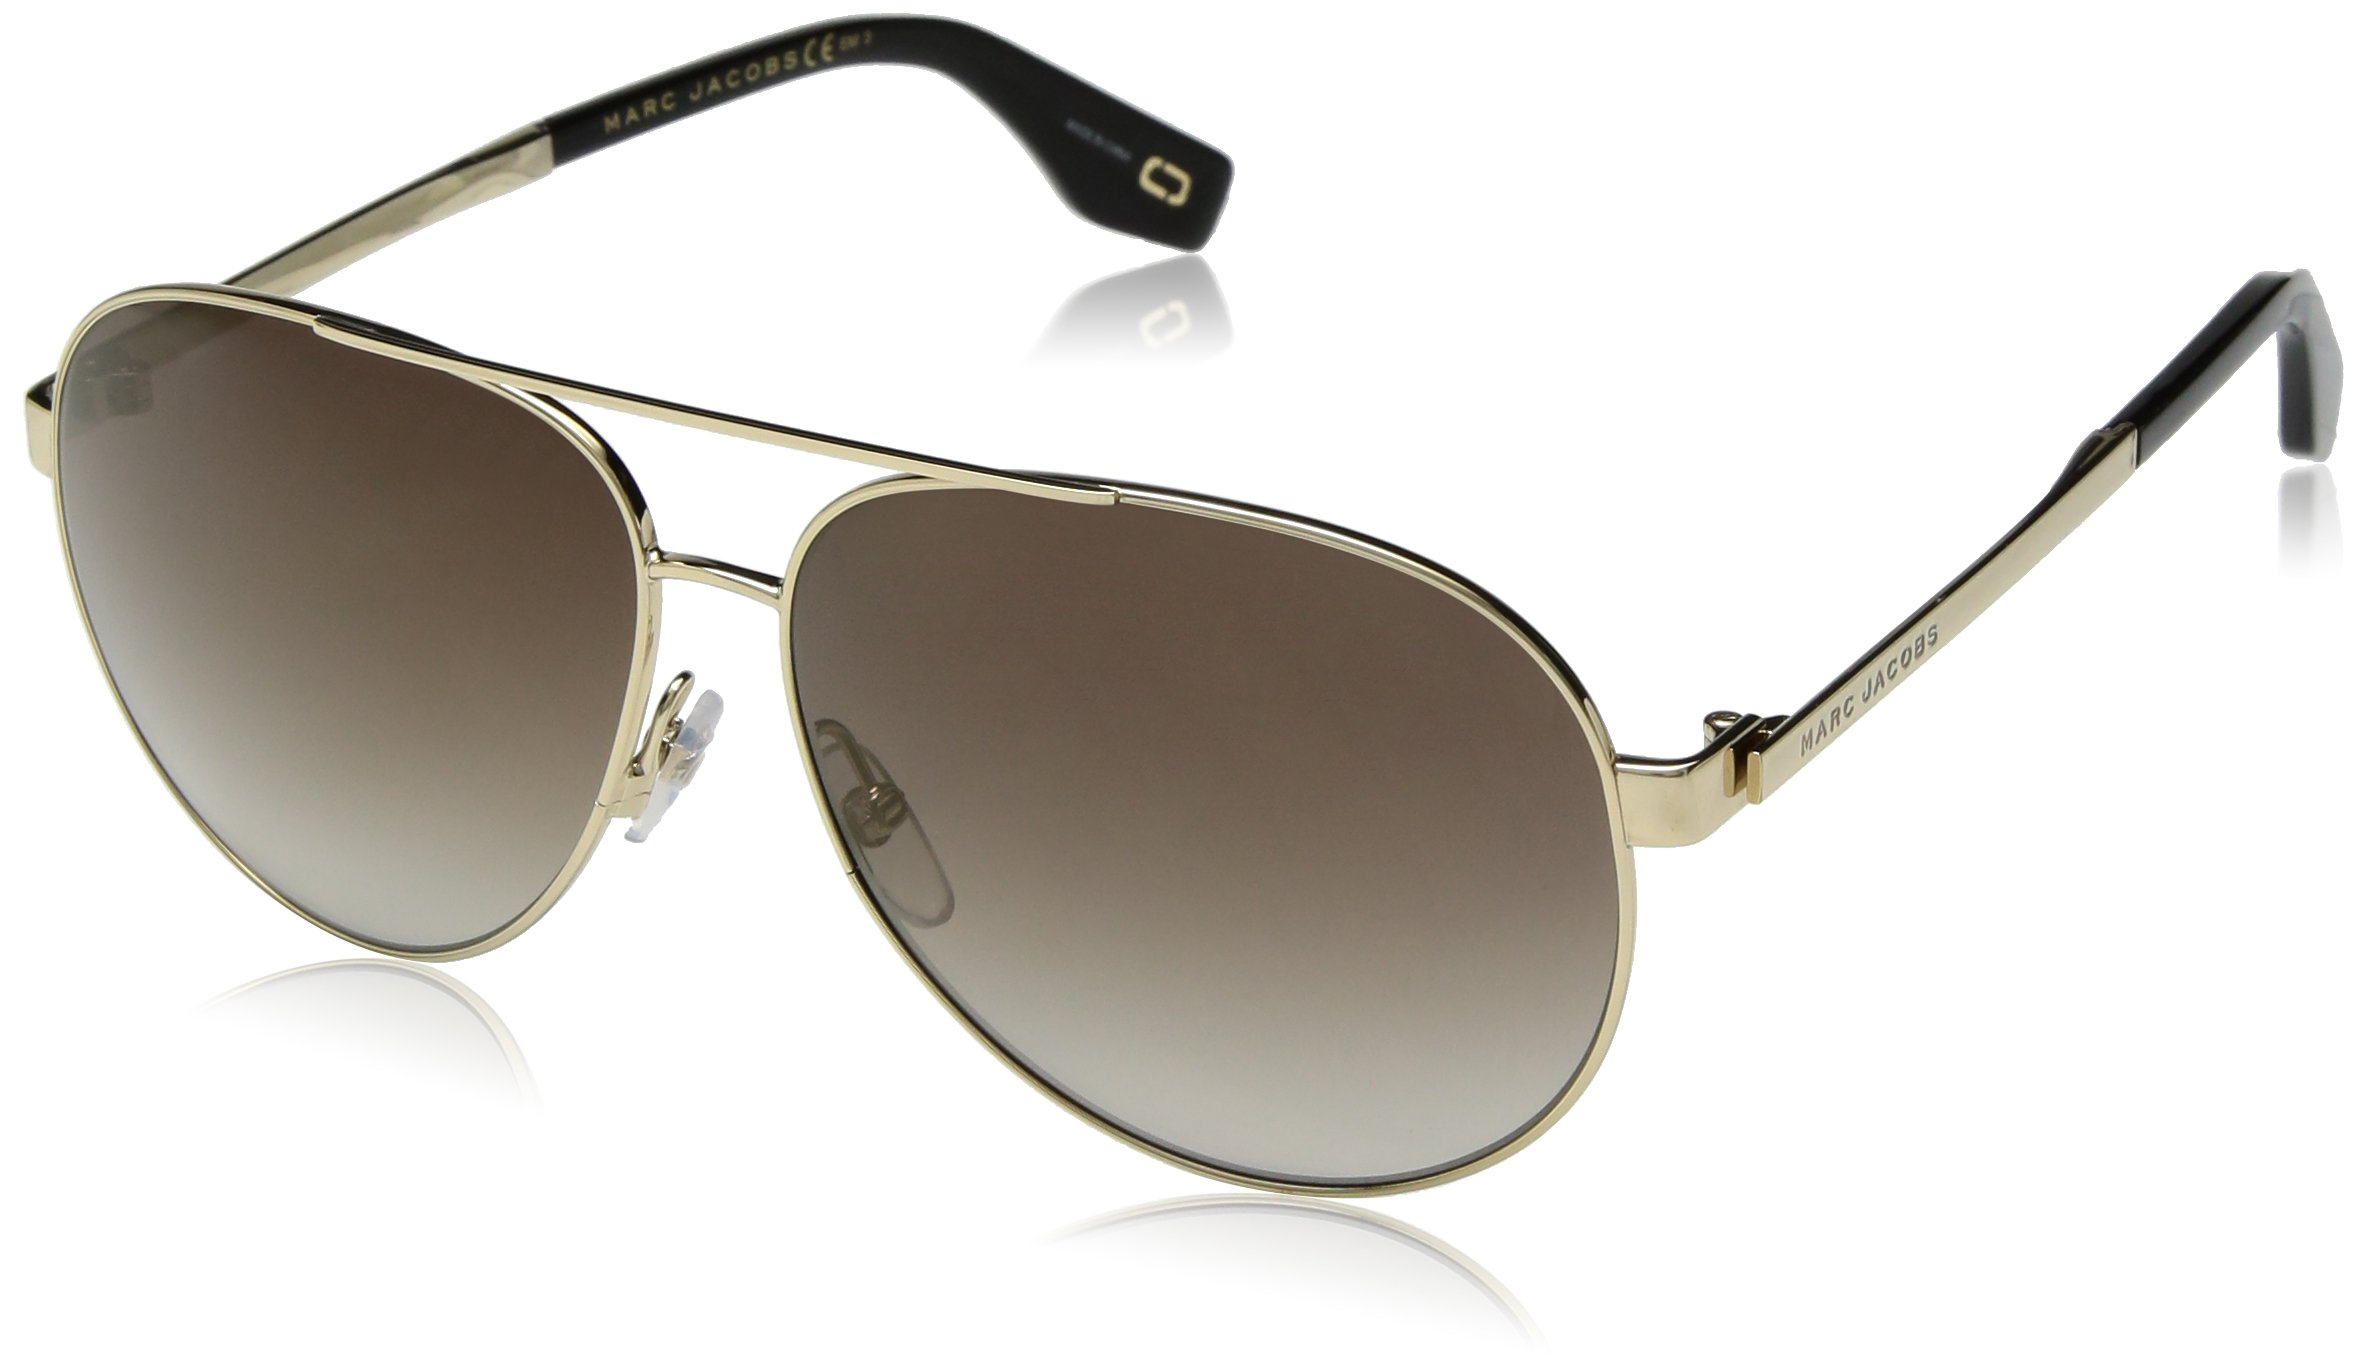 Marc Jacobs Women's Marc305s Aviator Sunglasses, Gold, 61 mm by Marc Jacobs